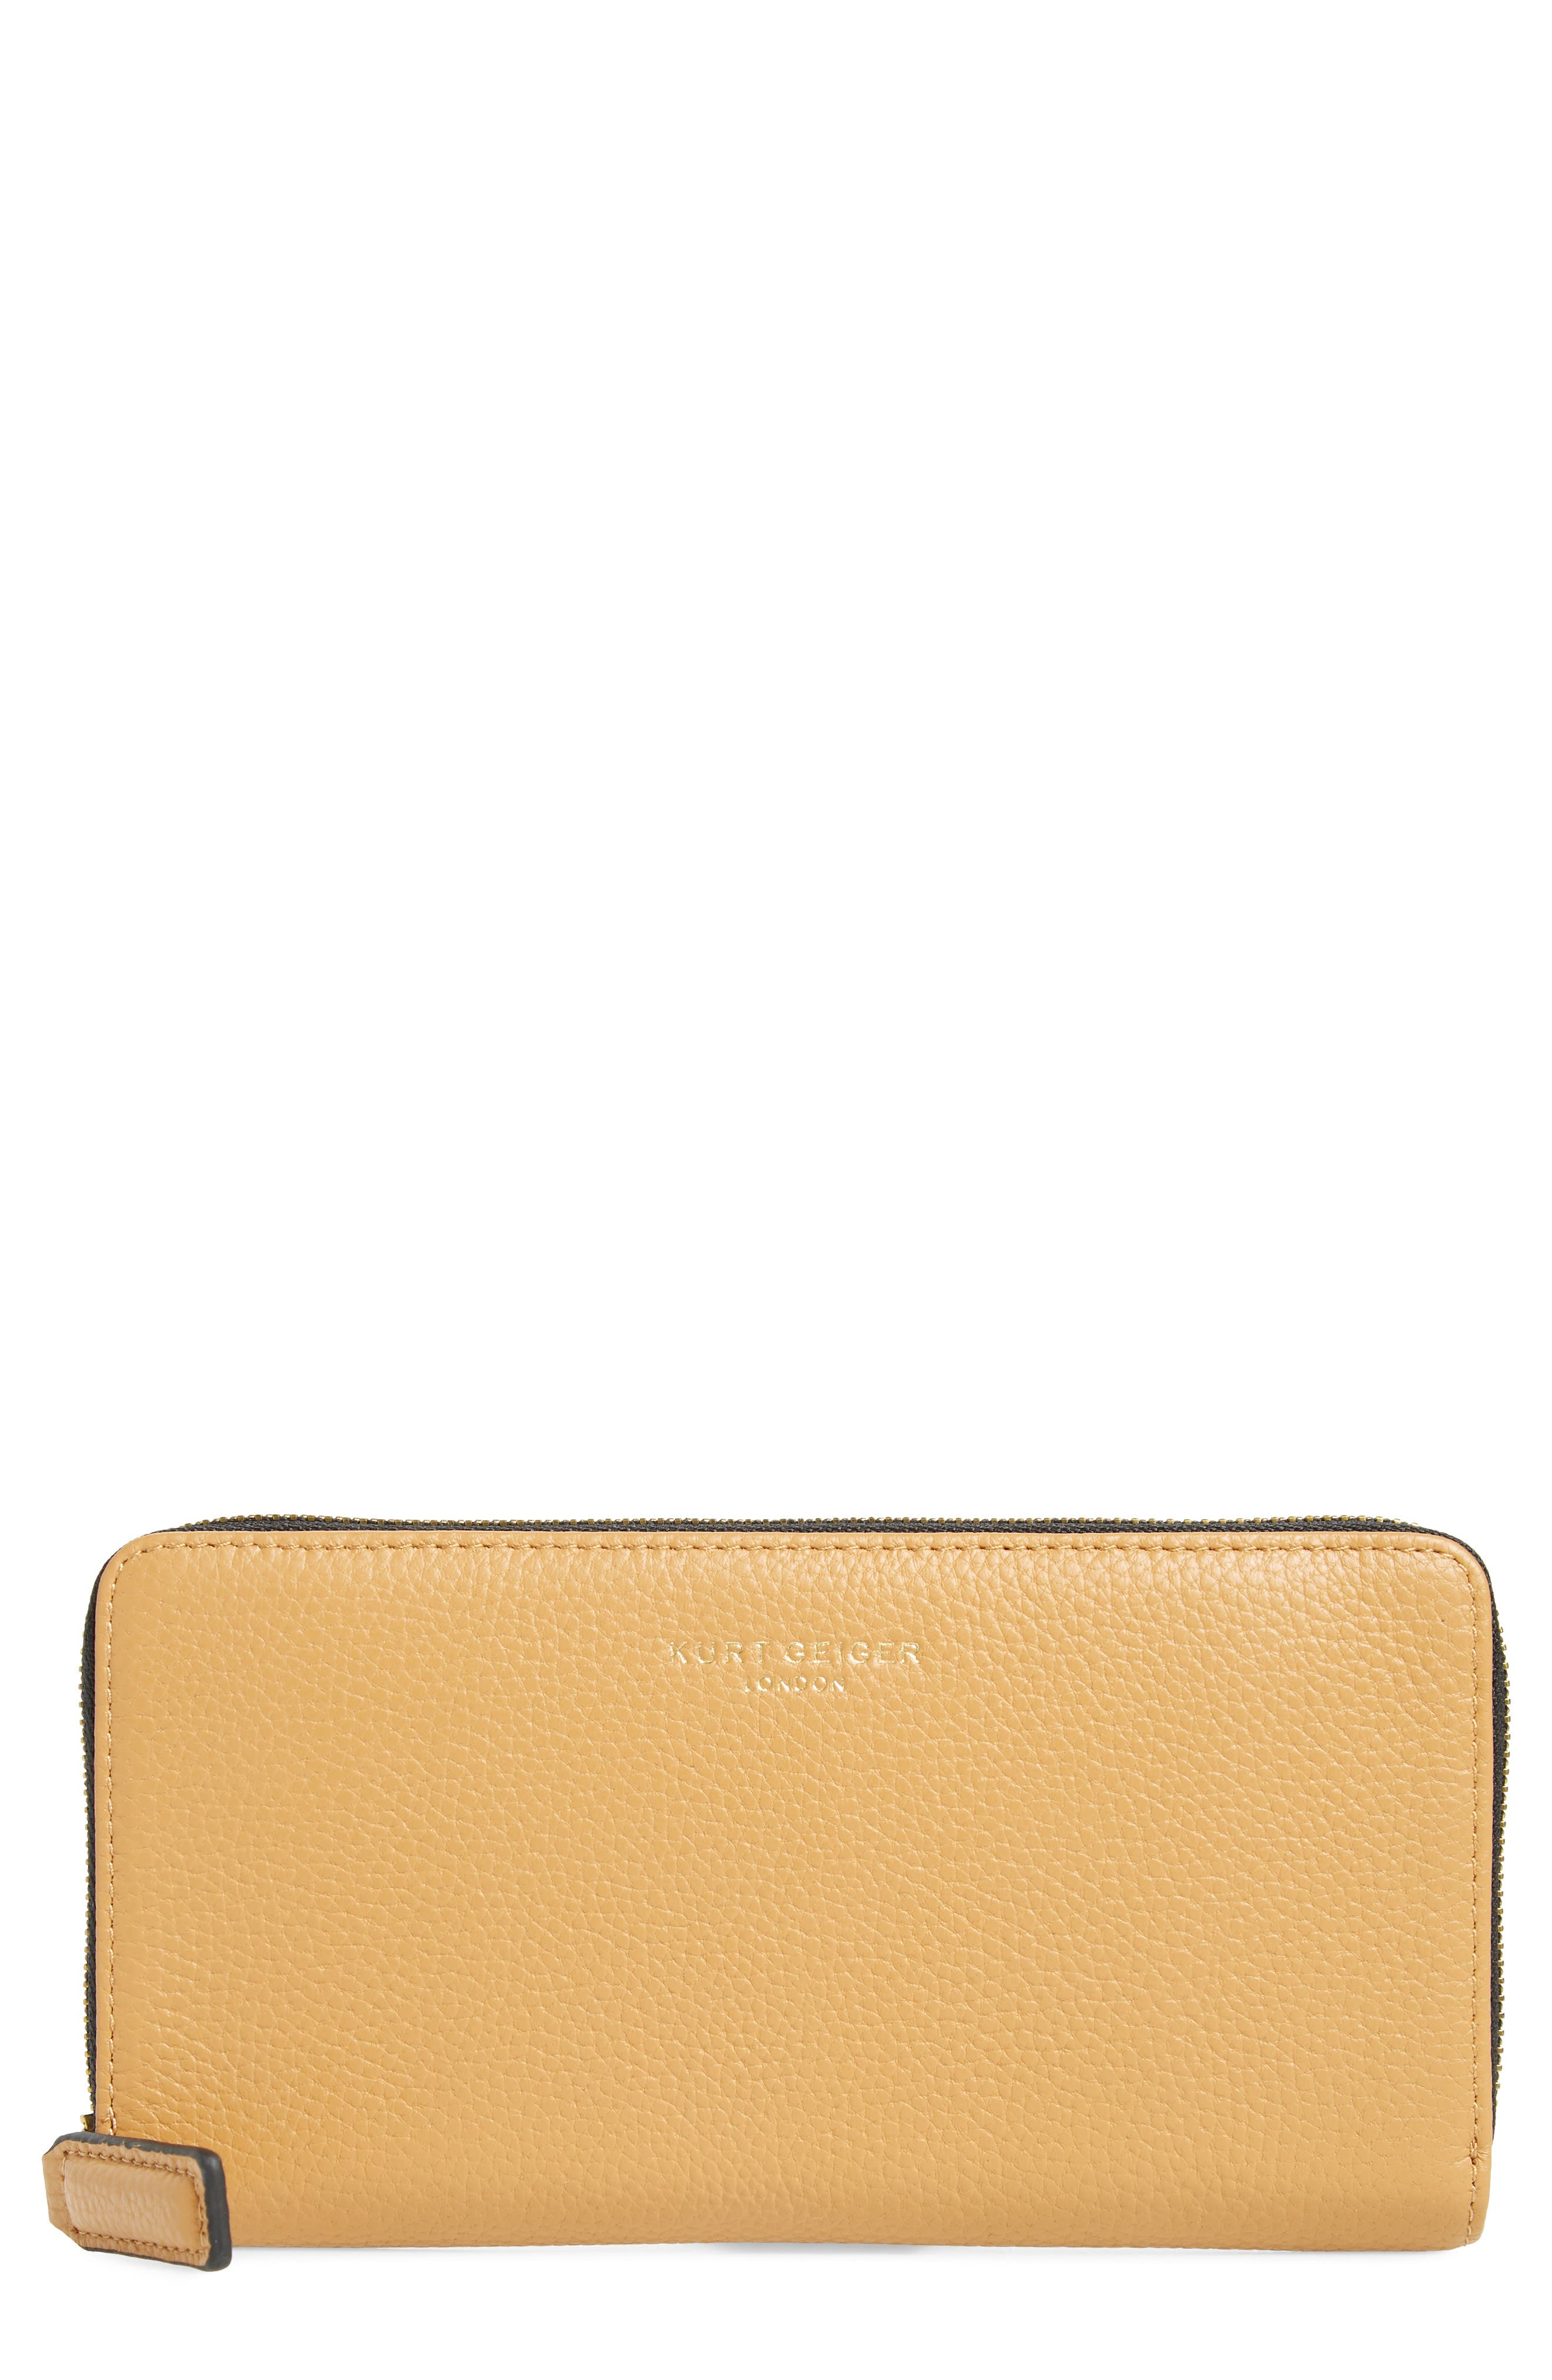 Zip Around Leather Wallet,                             Main thumbnail 3, color,